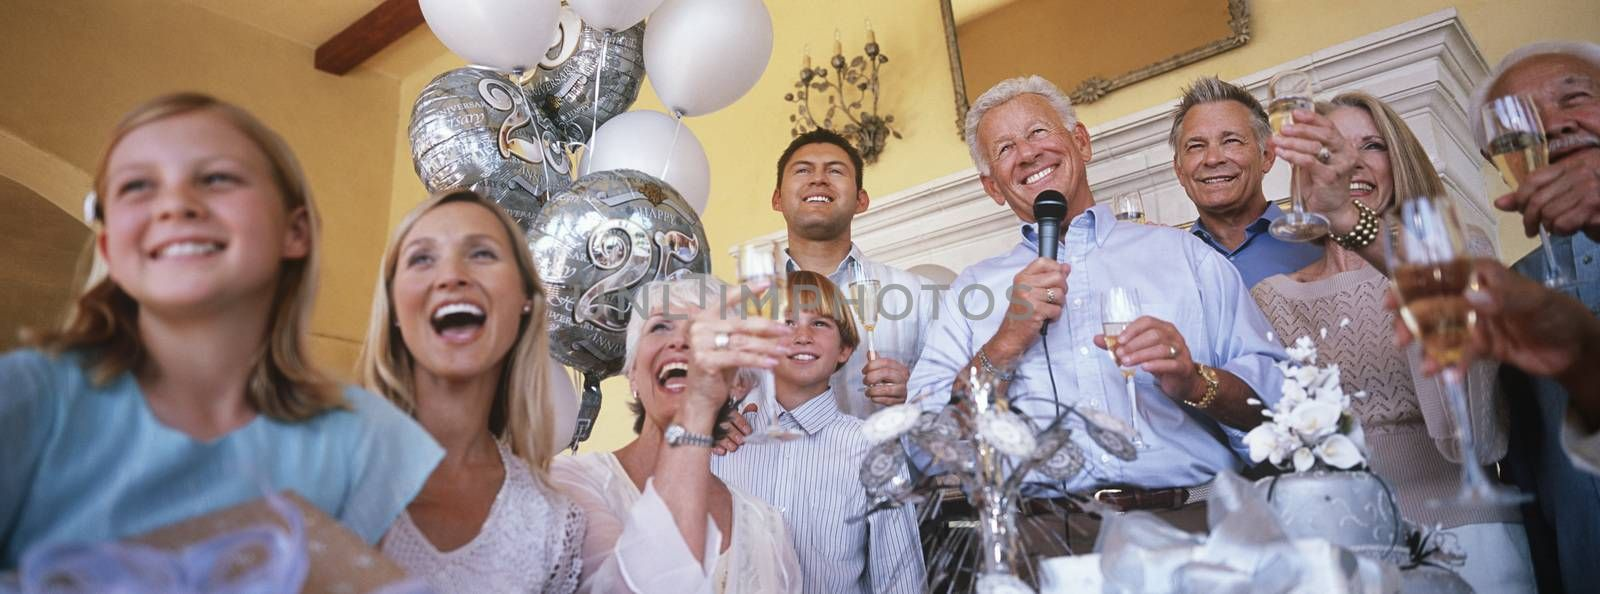 Family celebrating at party